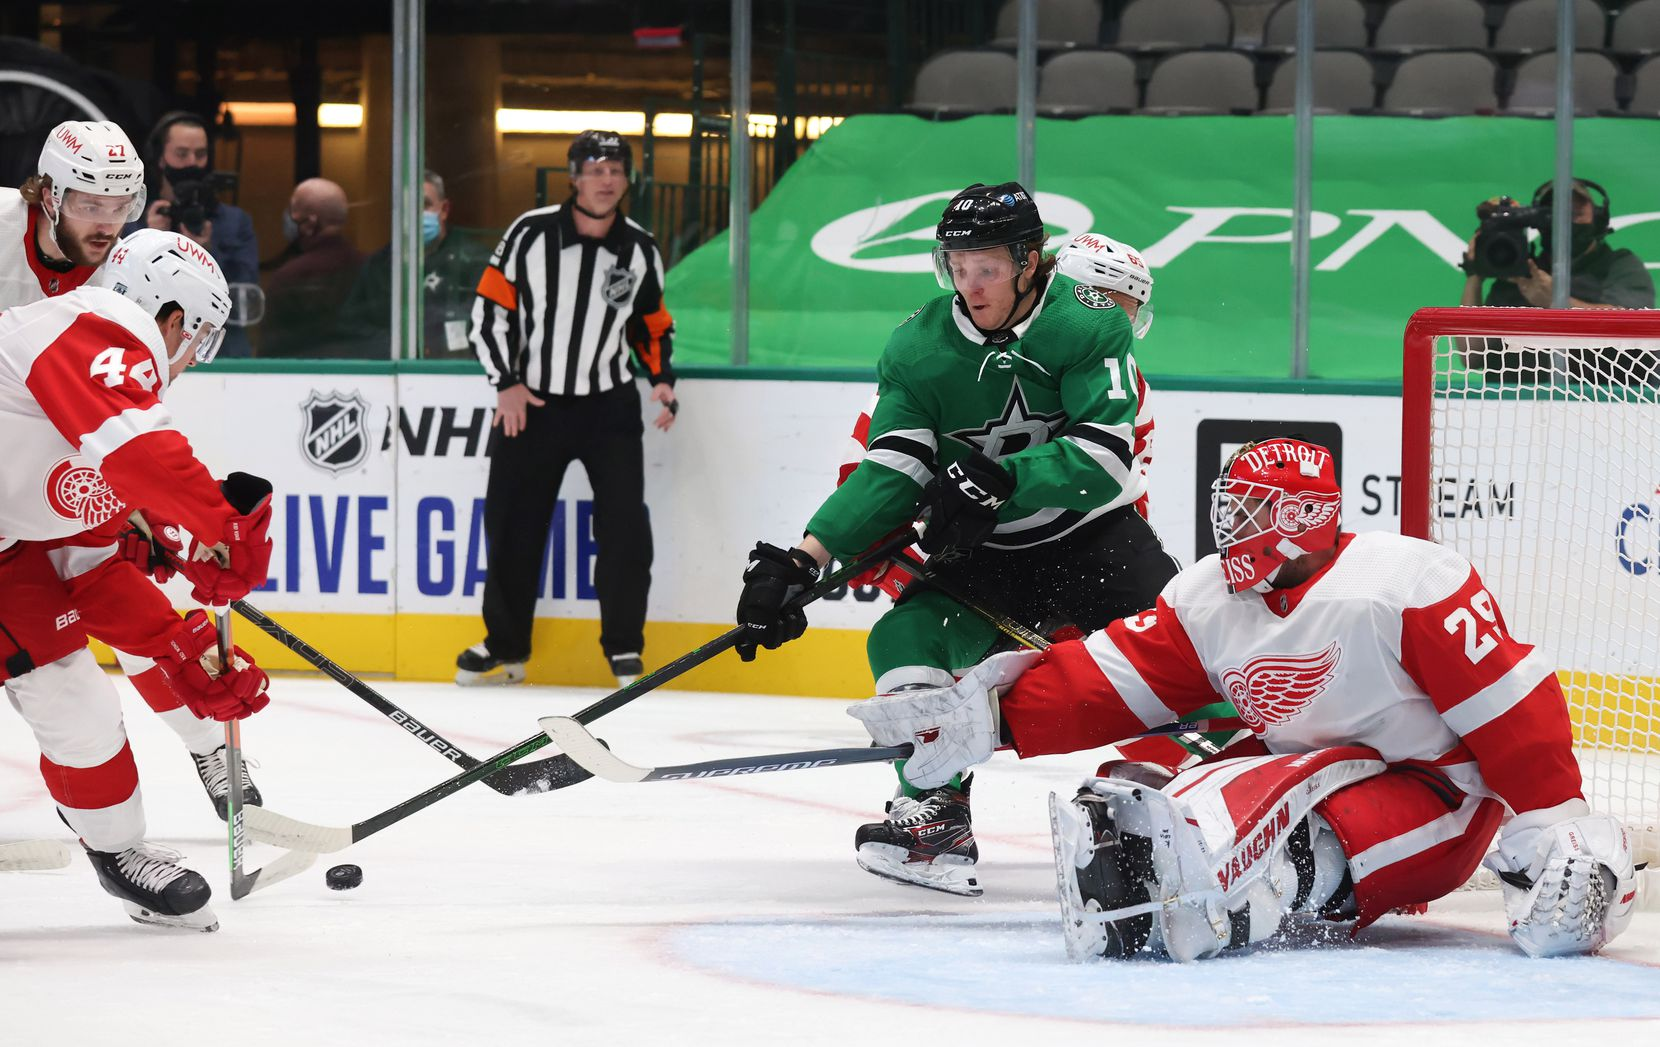 Dallas Stars Ty Dellandrea (10) looks to shoot as Detroit Red Wings defenseman Christian Djoos (44) and Detroit Red Wings goaltender Thomas Greiss (29) defend the goal during the first period of play at American Airlines Center on Tuesday, January 26, 2021in Dallas. (Vernon Bryant/The Dallas Morning News)